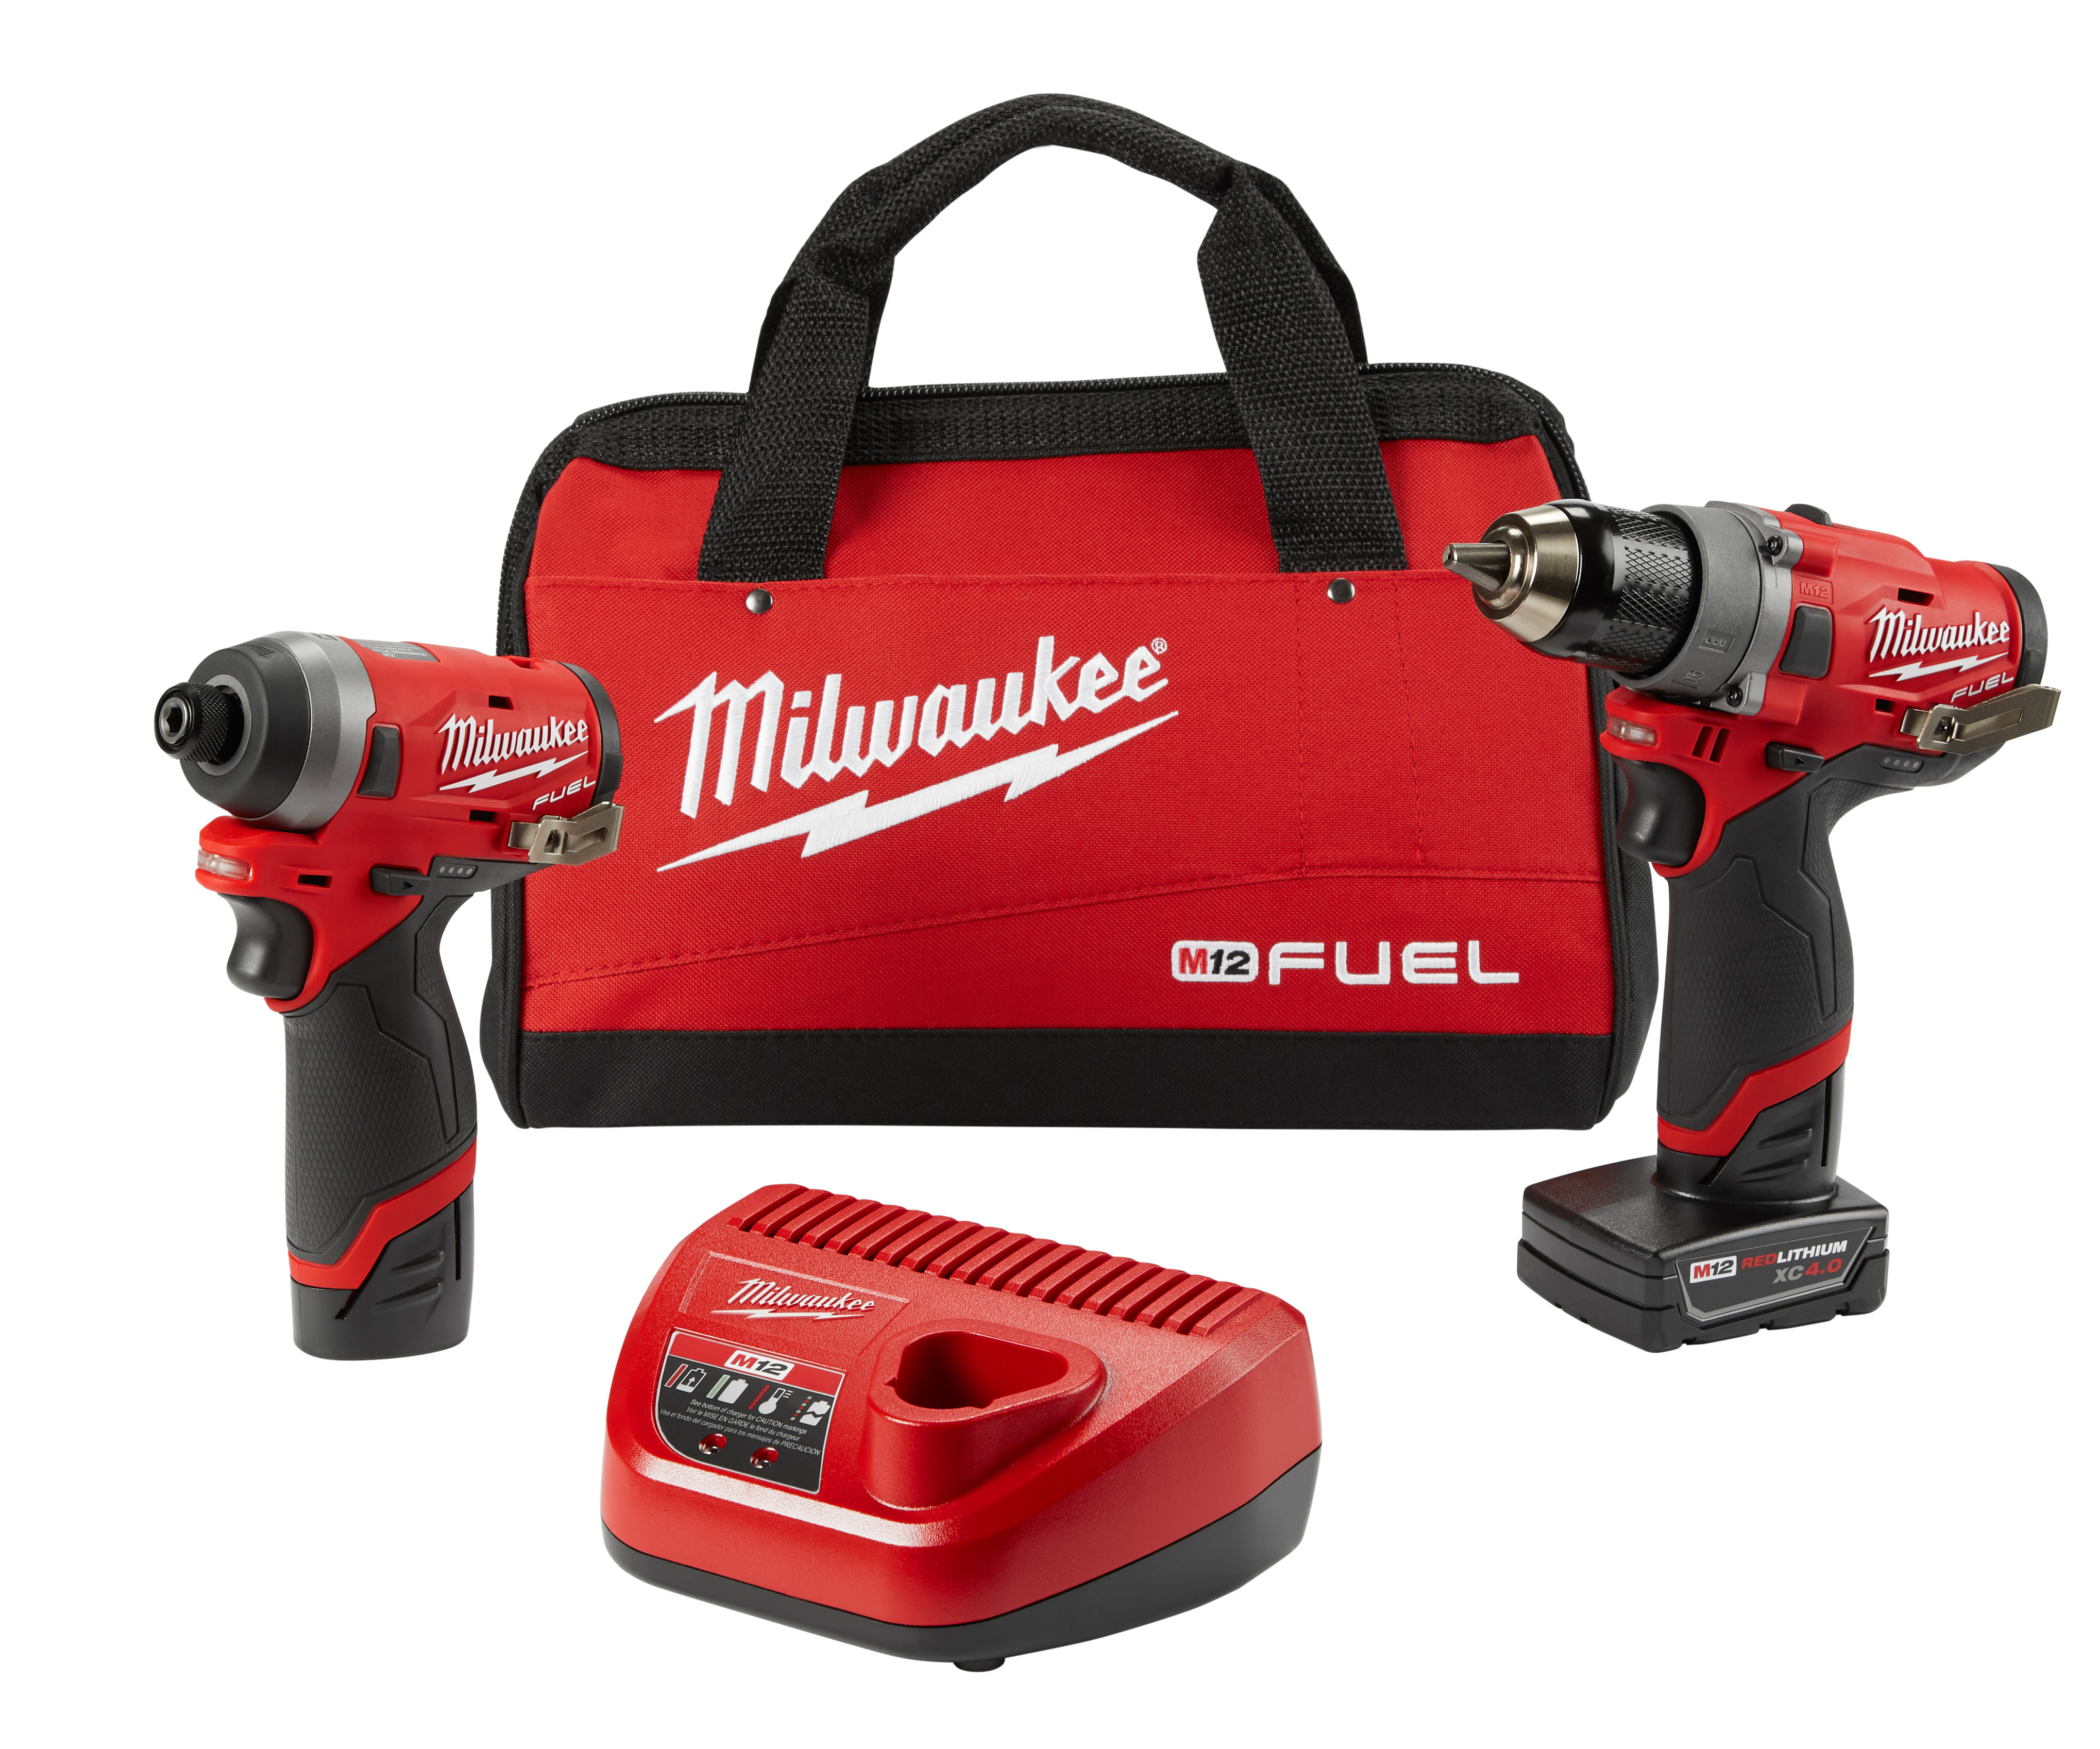 Milwaukee® M12™ FUEL™ 2596-22 Cordless Combination Kit, Tools: Drill Driver, Impact Driver, 12 VAC, 2 Ah Lithium-Ion, Pistol Grip Handle